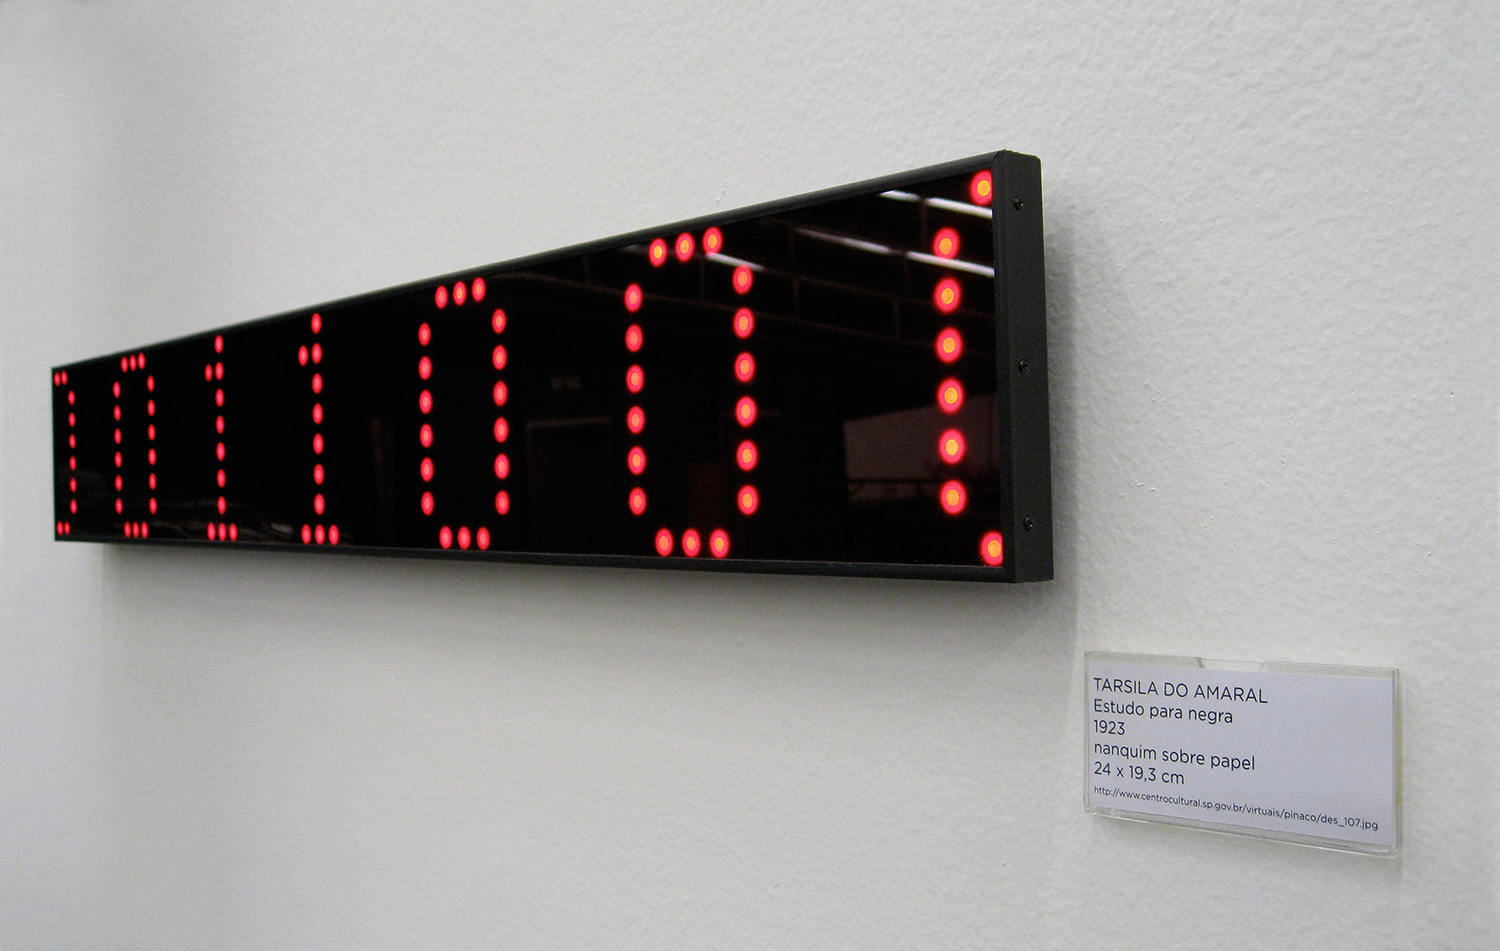 Collection (detail) •2007 •  Seven decoded digital images on LED displays, seven identification tags •  5.1 x 35.4 in (each display), 1.9 x 3.9 in (each tag)  •  Art Collection of the City of São Paulo